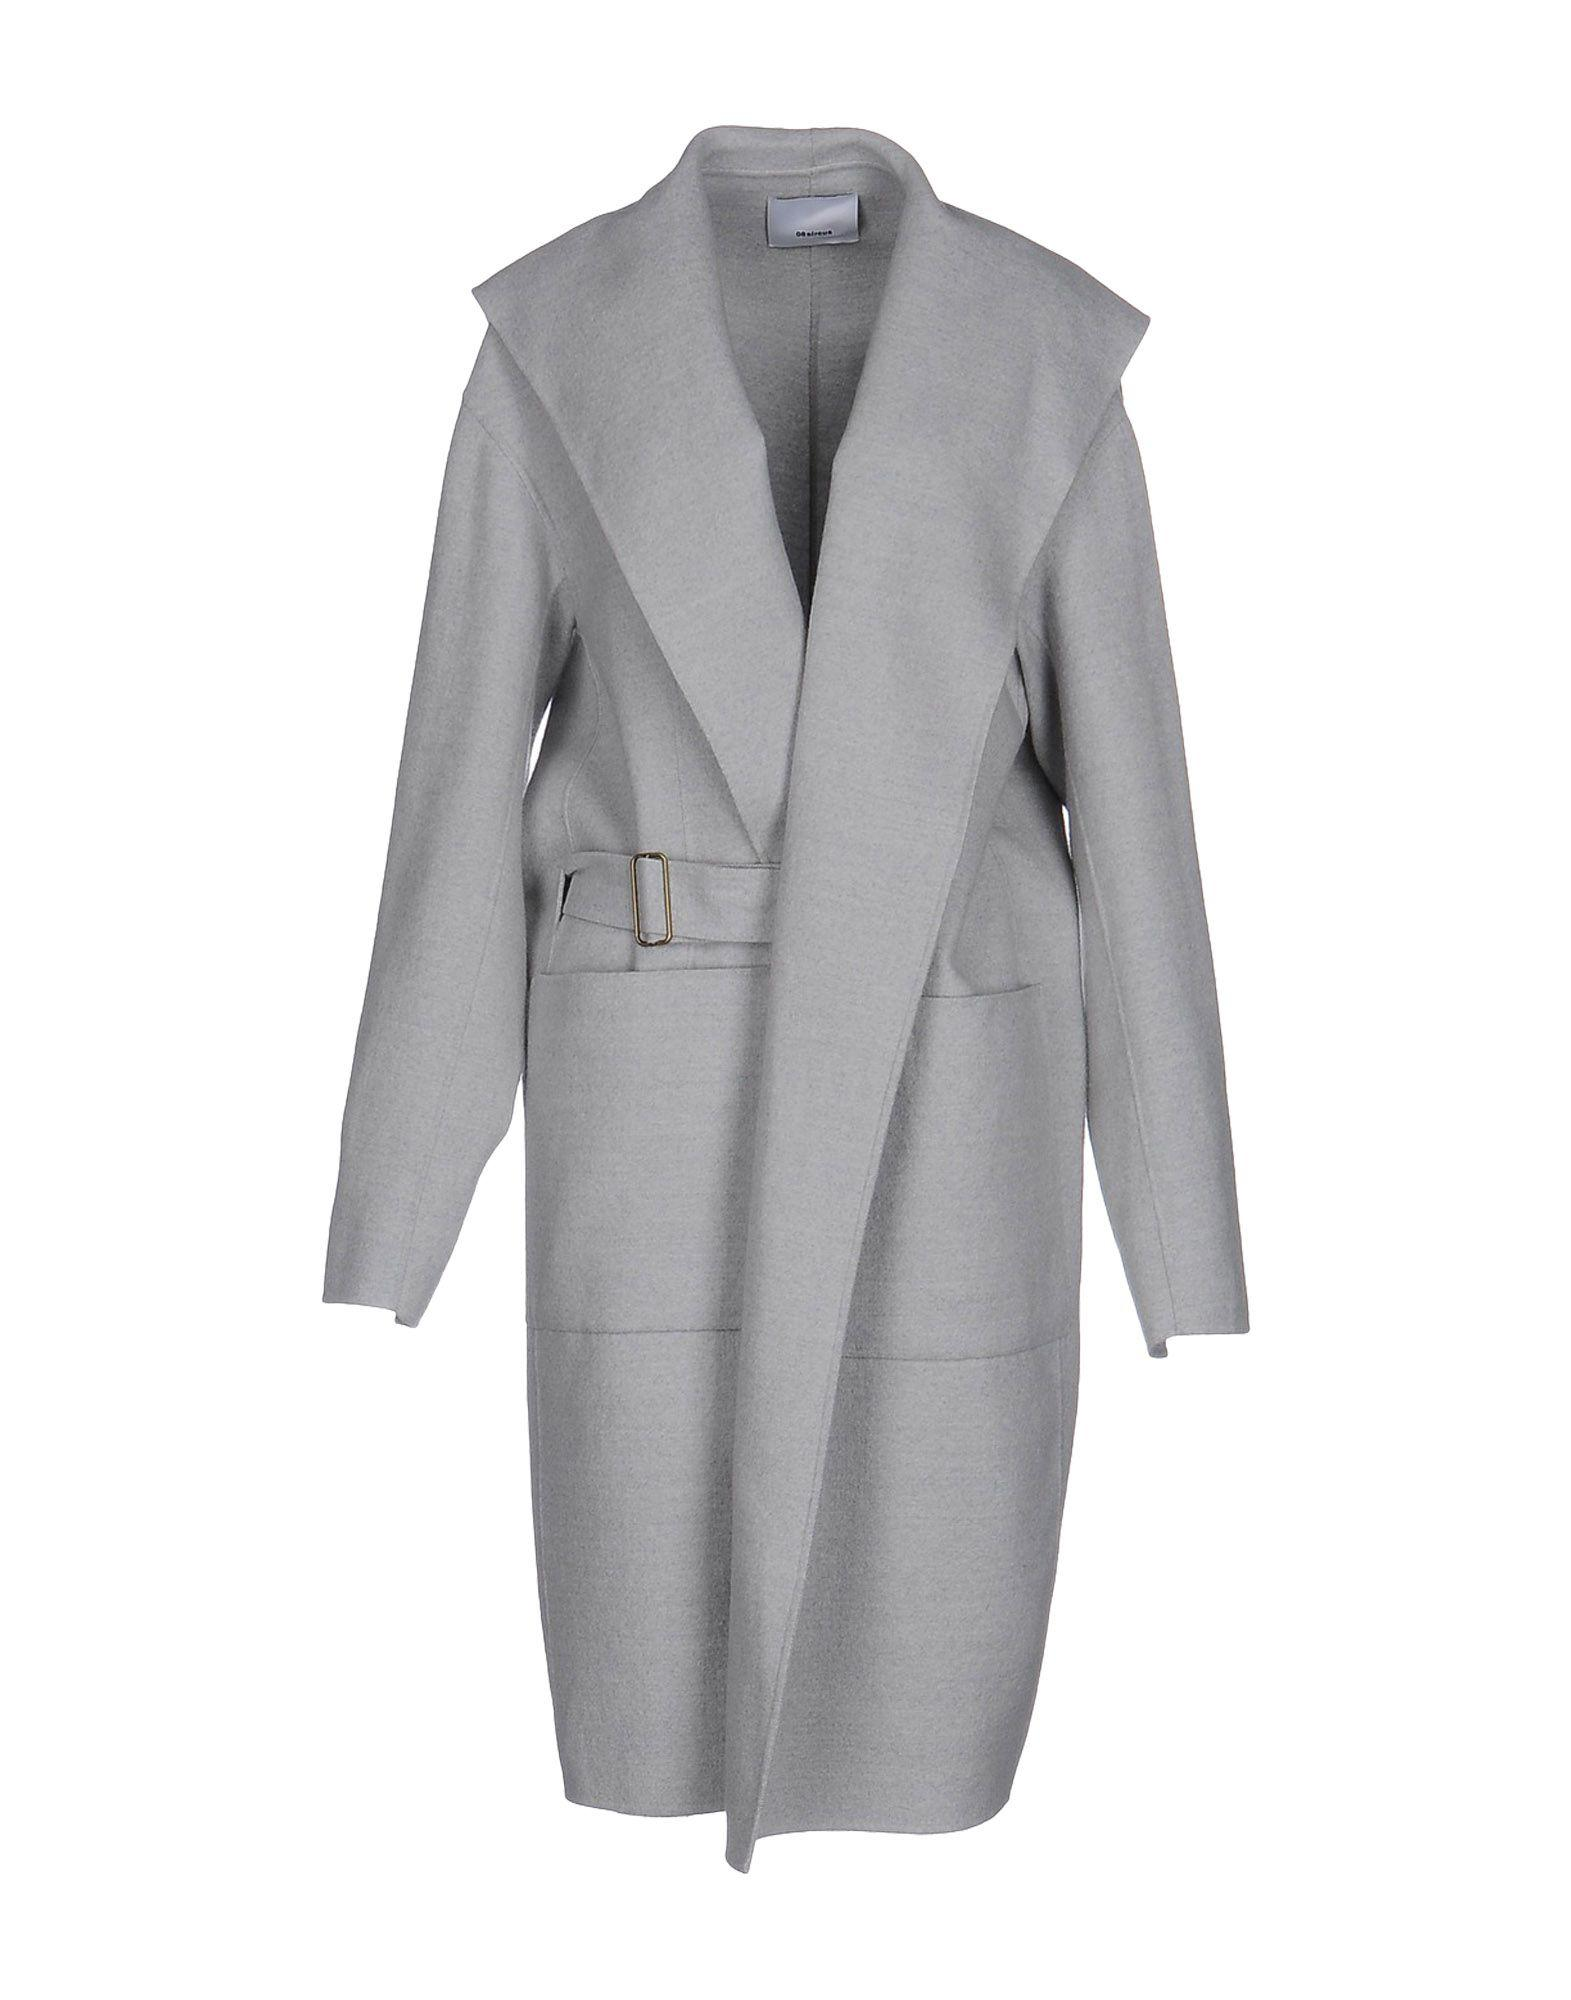 08sircus Belted Coats In Light Grey